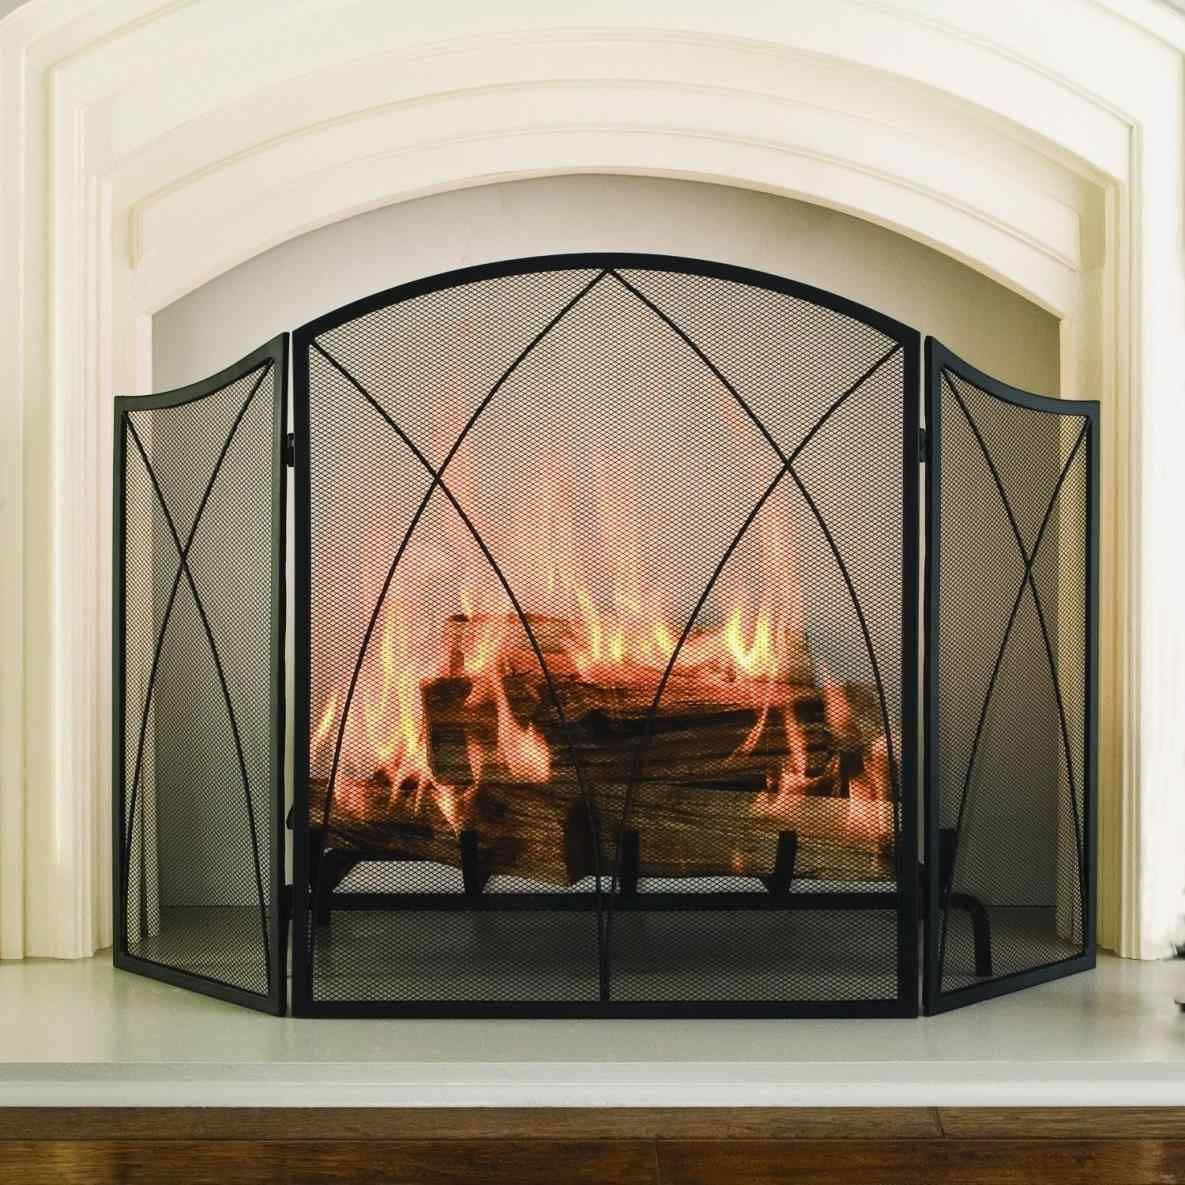 Iron Fireplace tools Lovely 11 Best Fancy Fireplace Screens Design and Decor Ideas